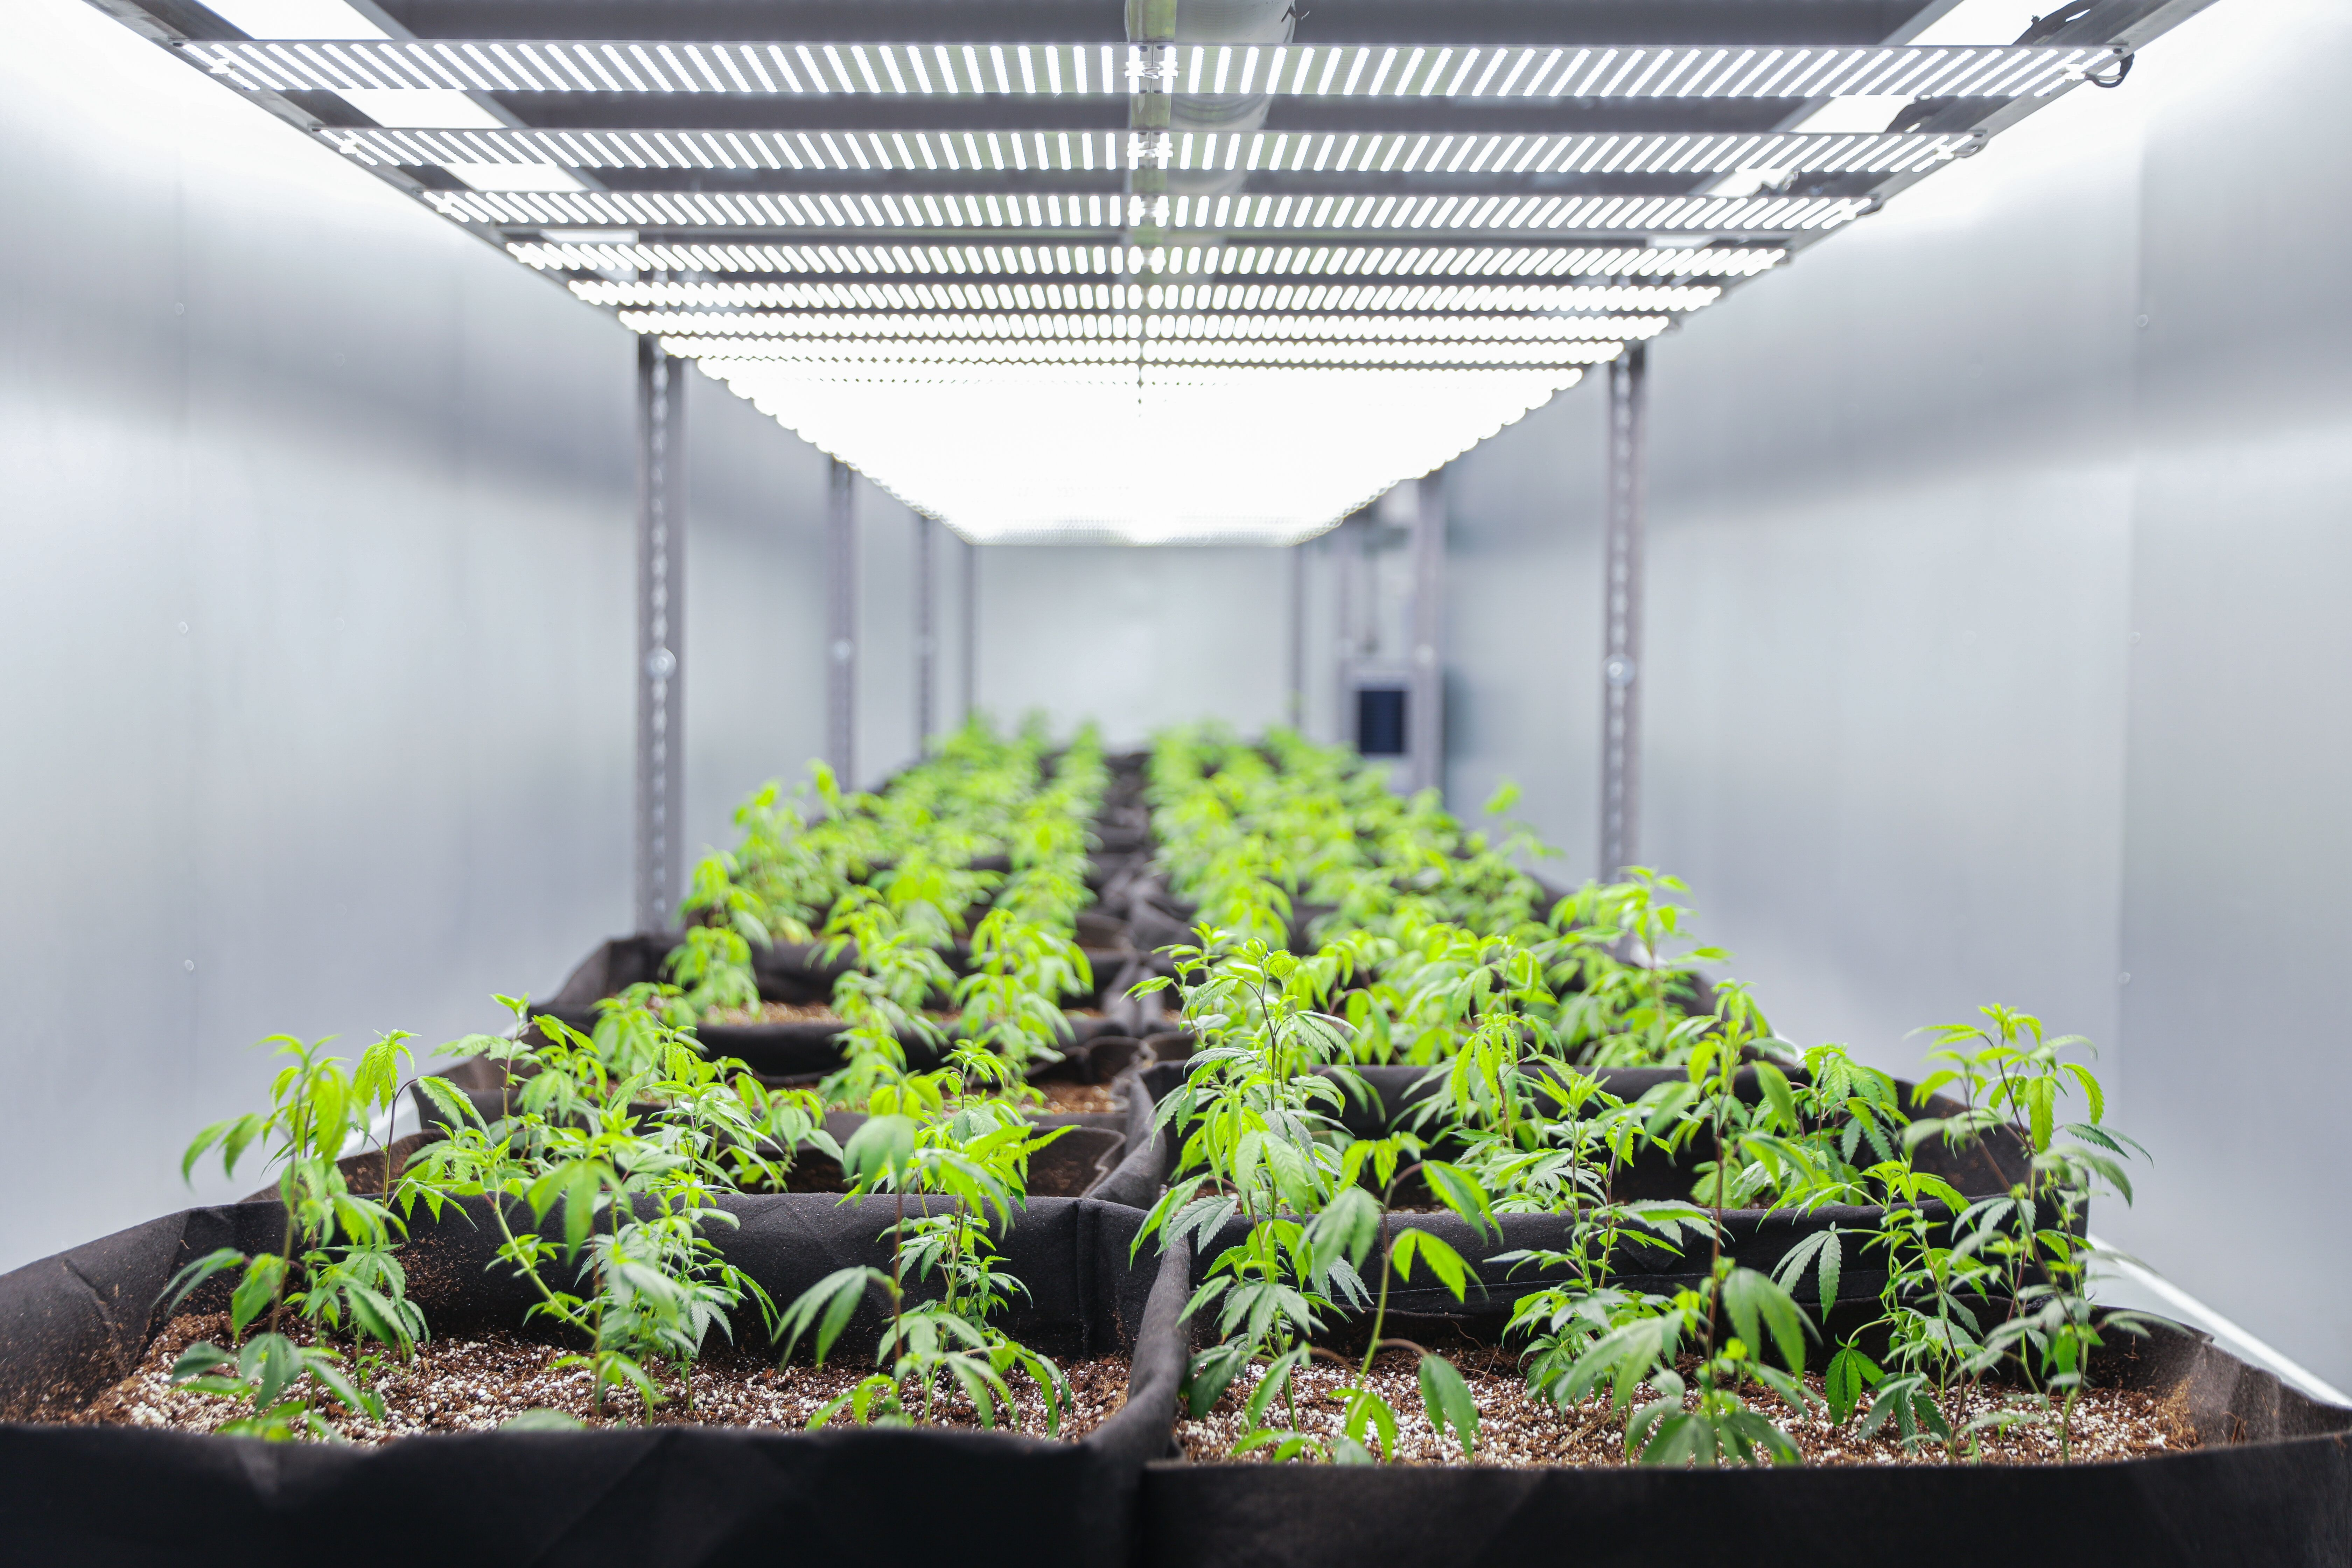 Could The Future of Cannabis Growing Be Inside a Shipping Container?